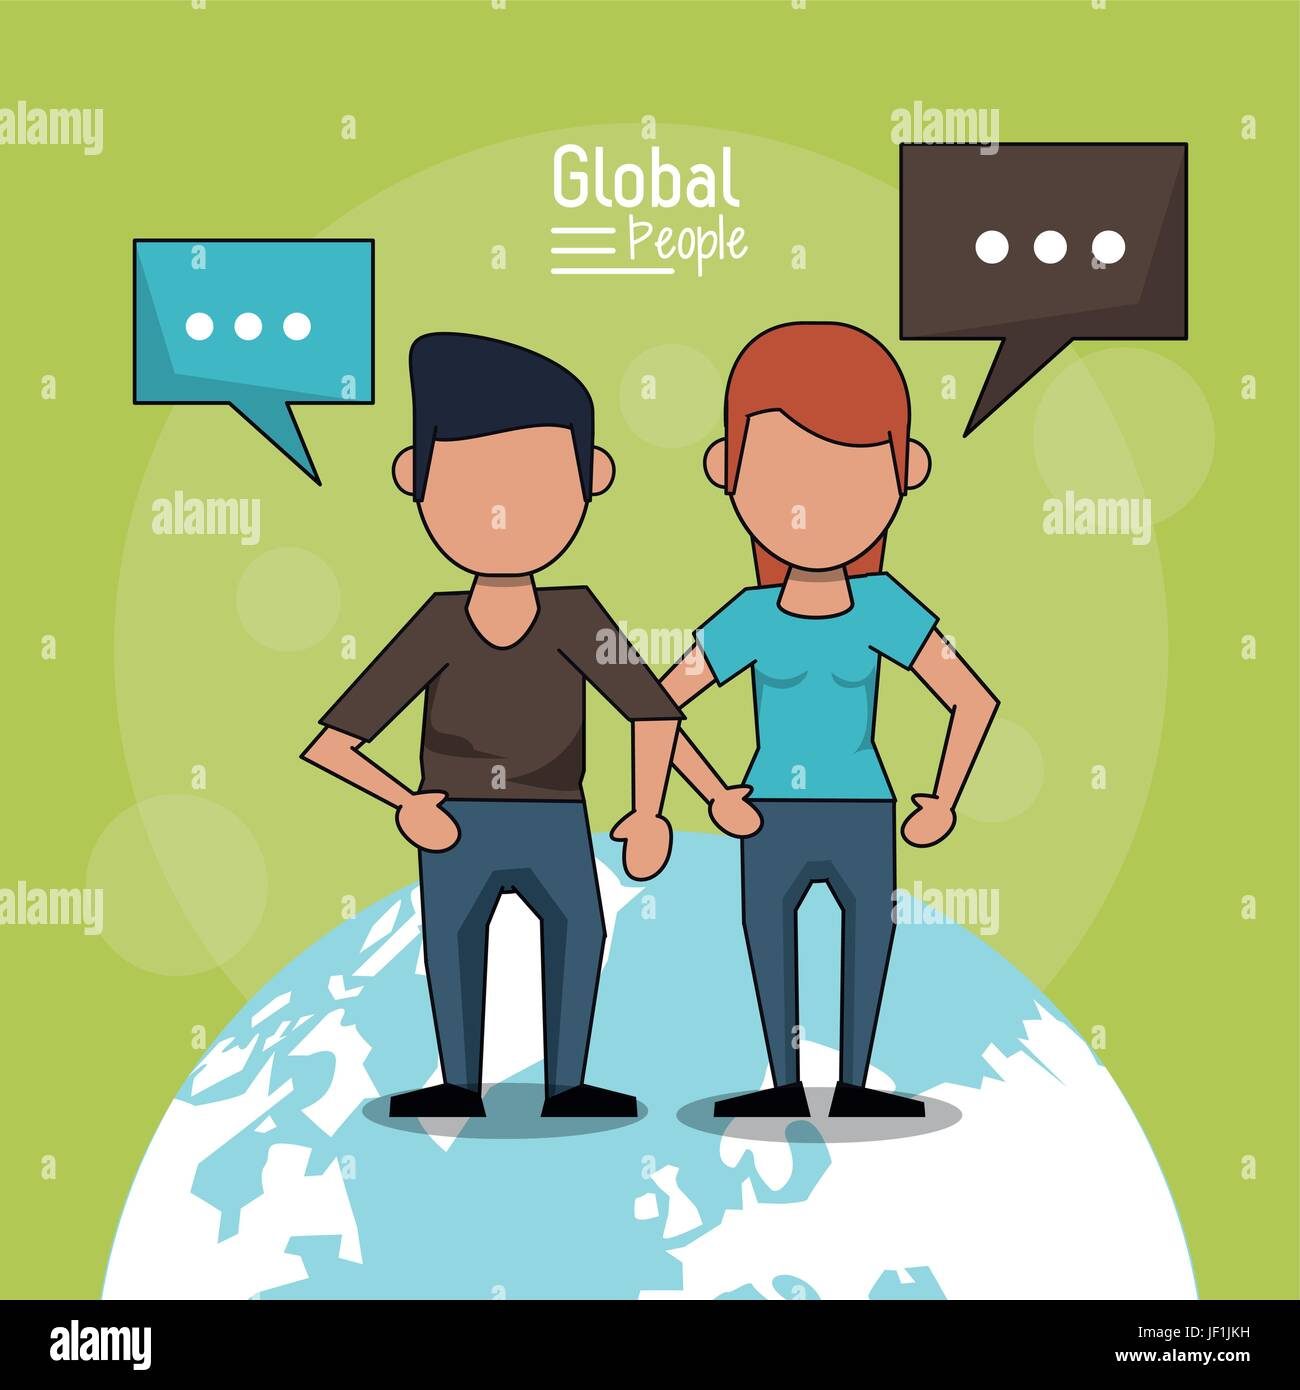 poster of global people with light green background with faceless couple over planet earth and text dialogues - Stock Image